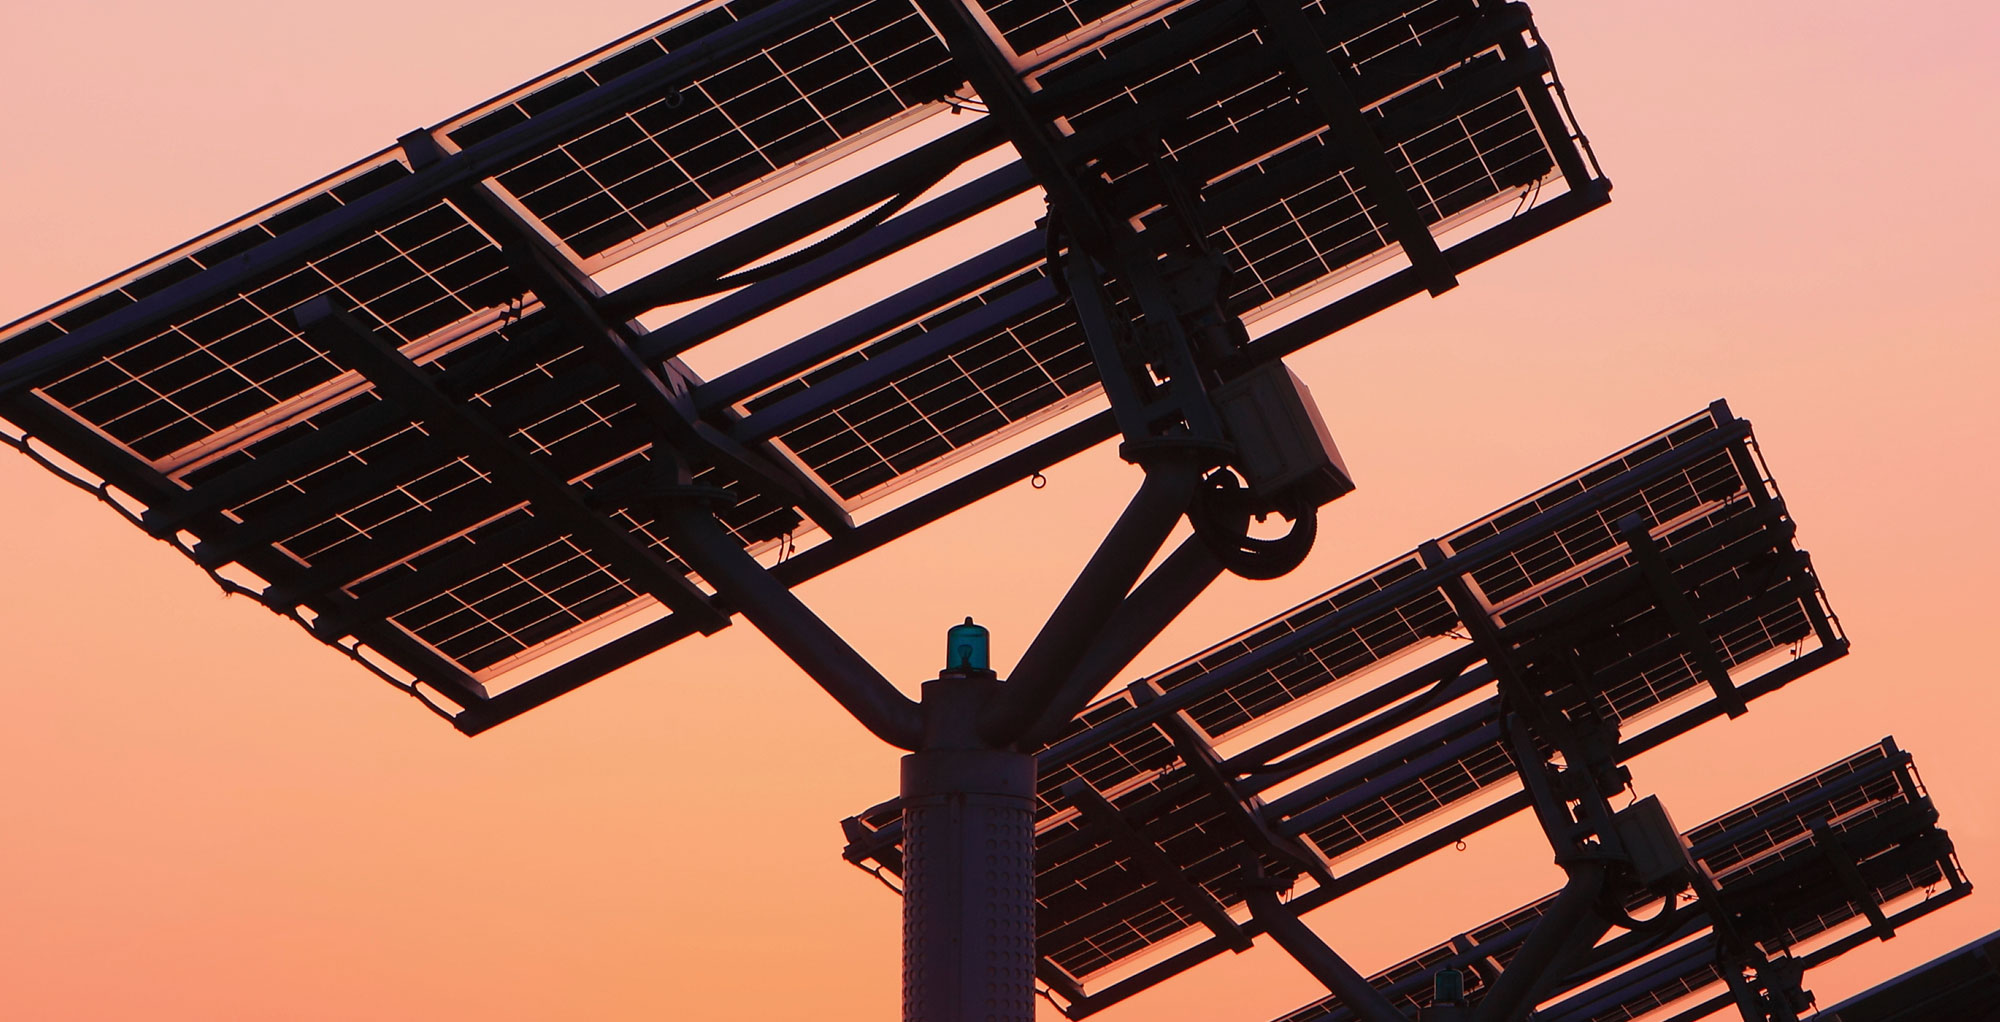 The sun has set at sunedison they have filed for bankruptcy biocorpaavc Choice Image